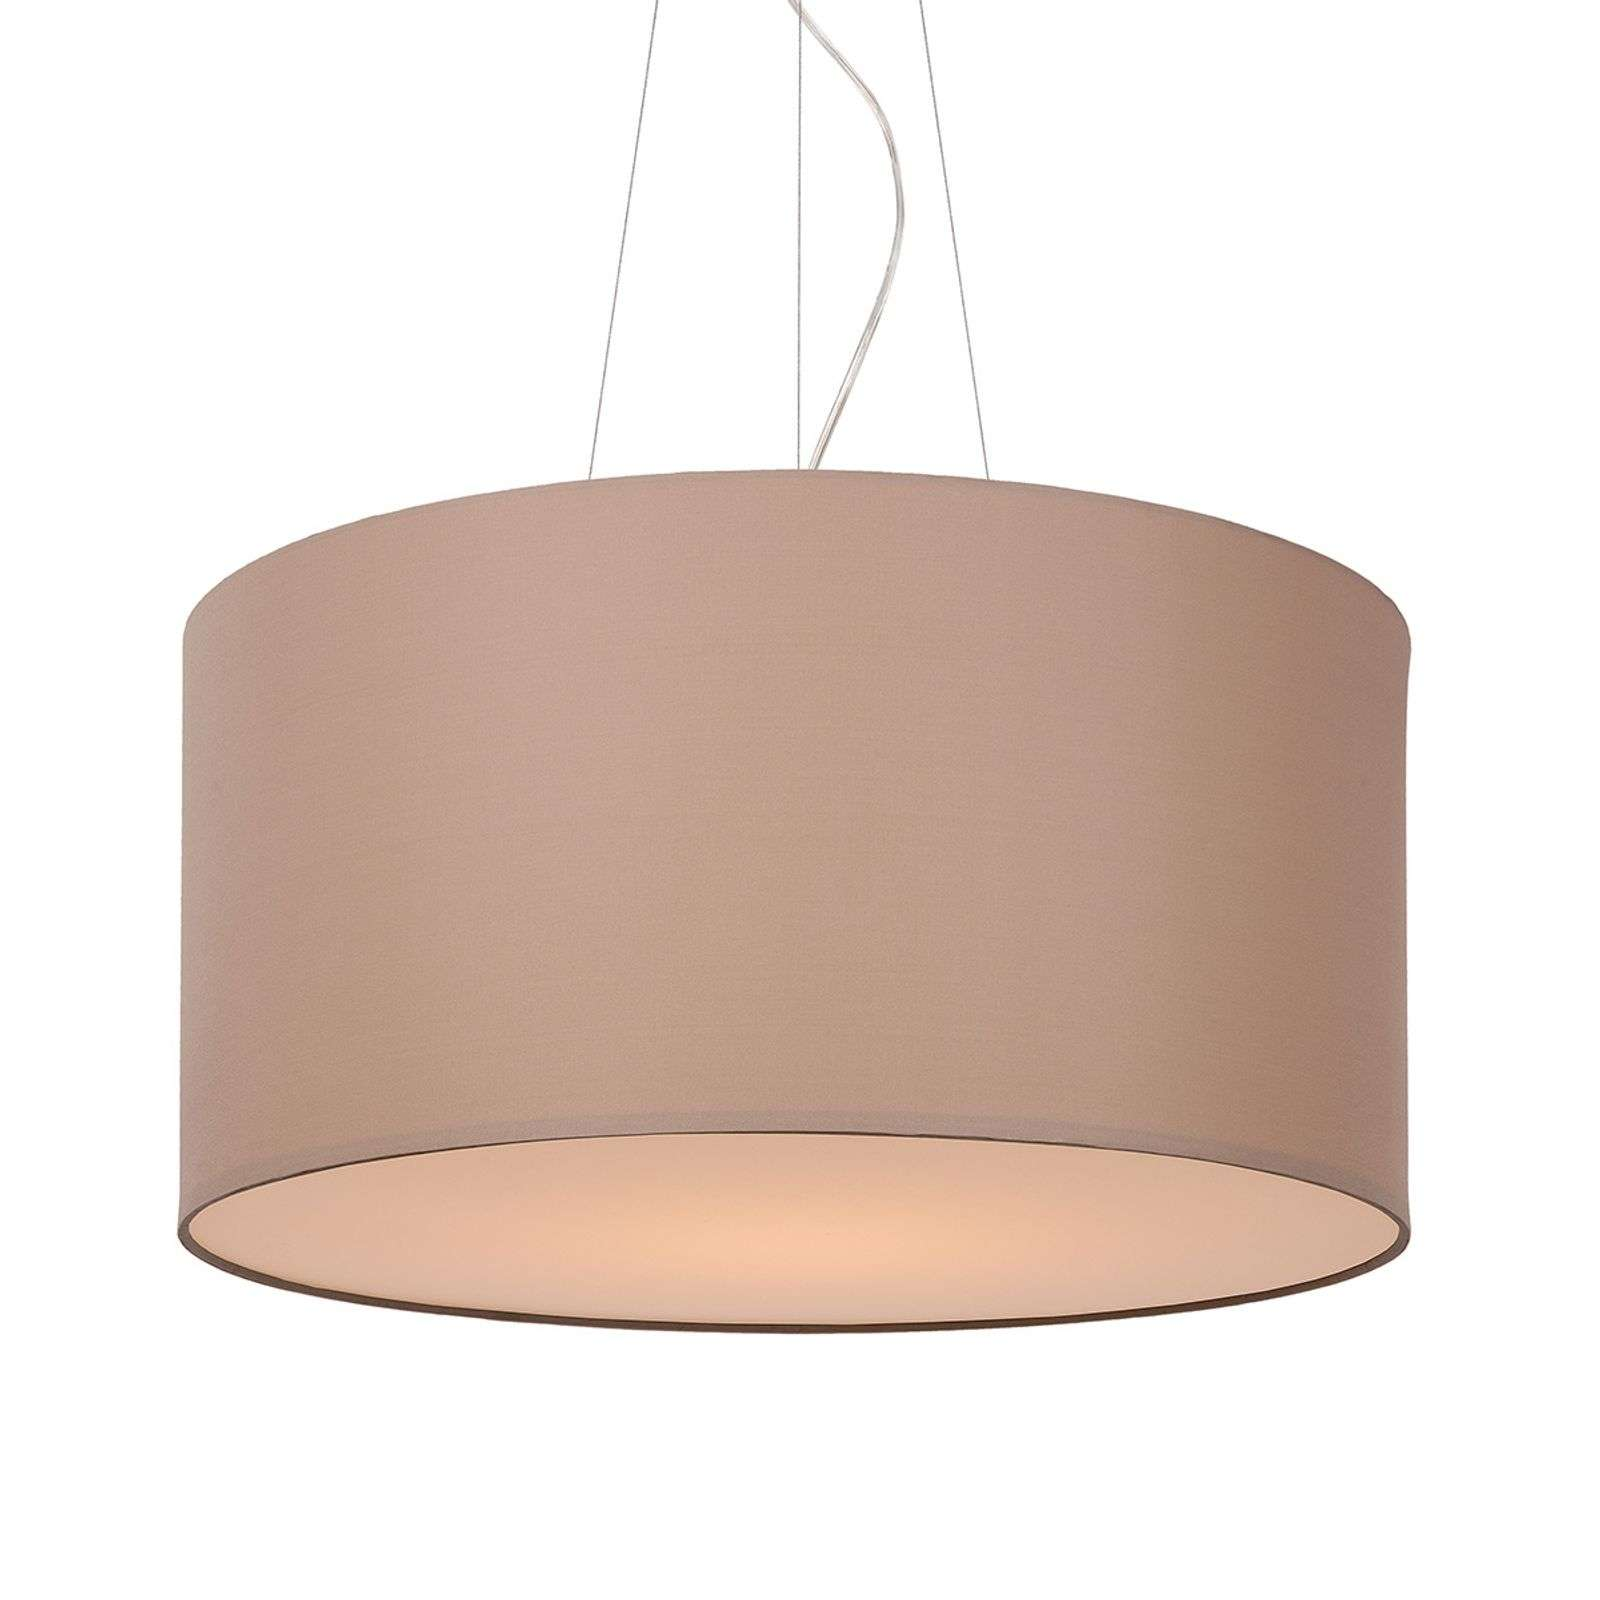 Universele hanglamp Coral, taupe, 40 cm